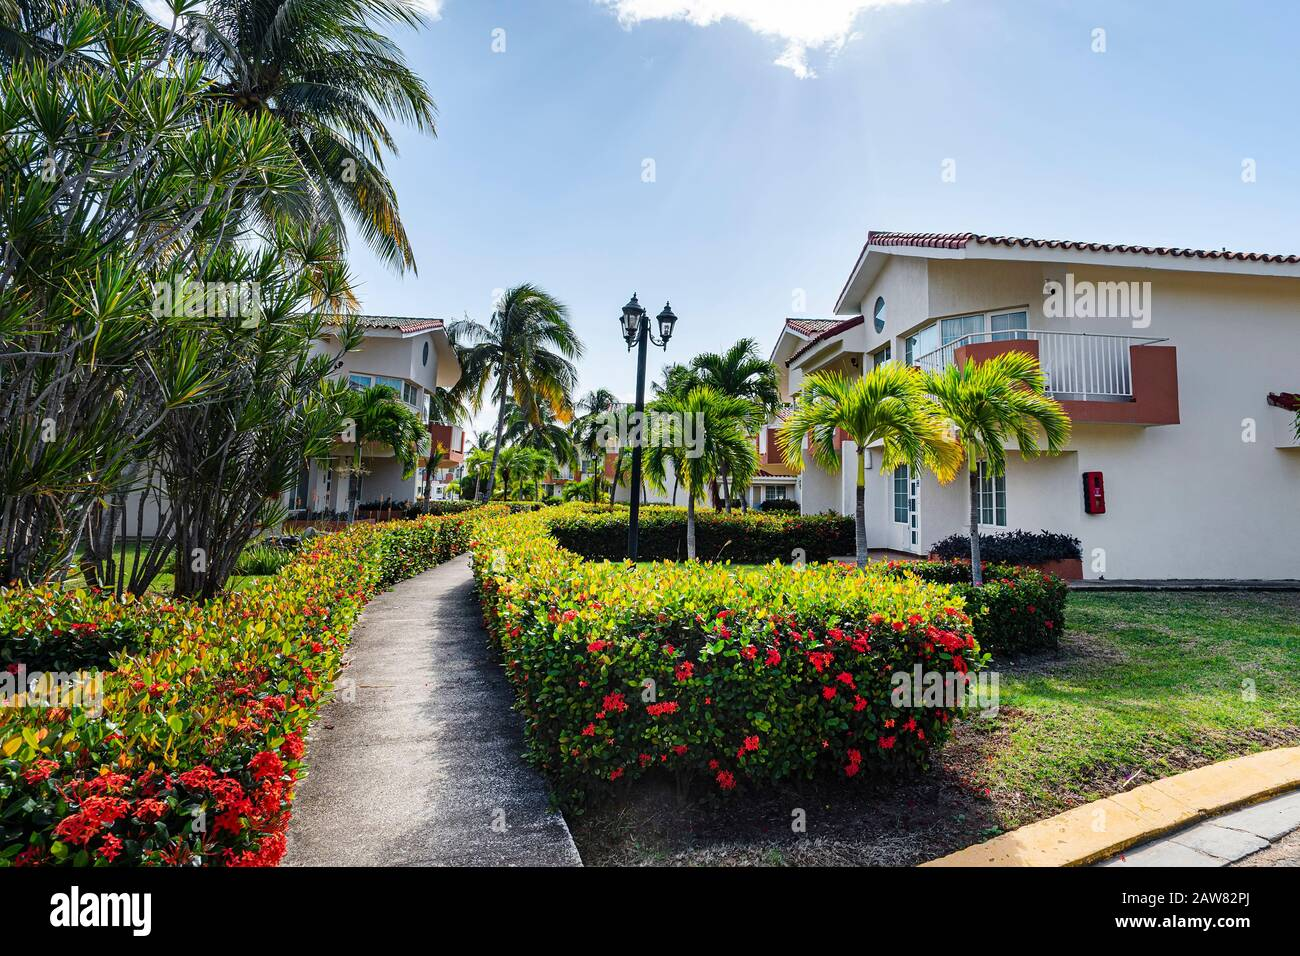 Garden Villas High Resolution Stock Photography And Images Alamy